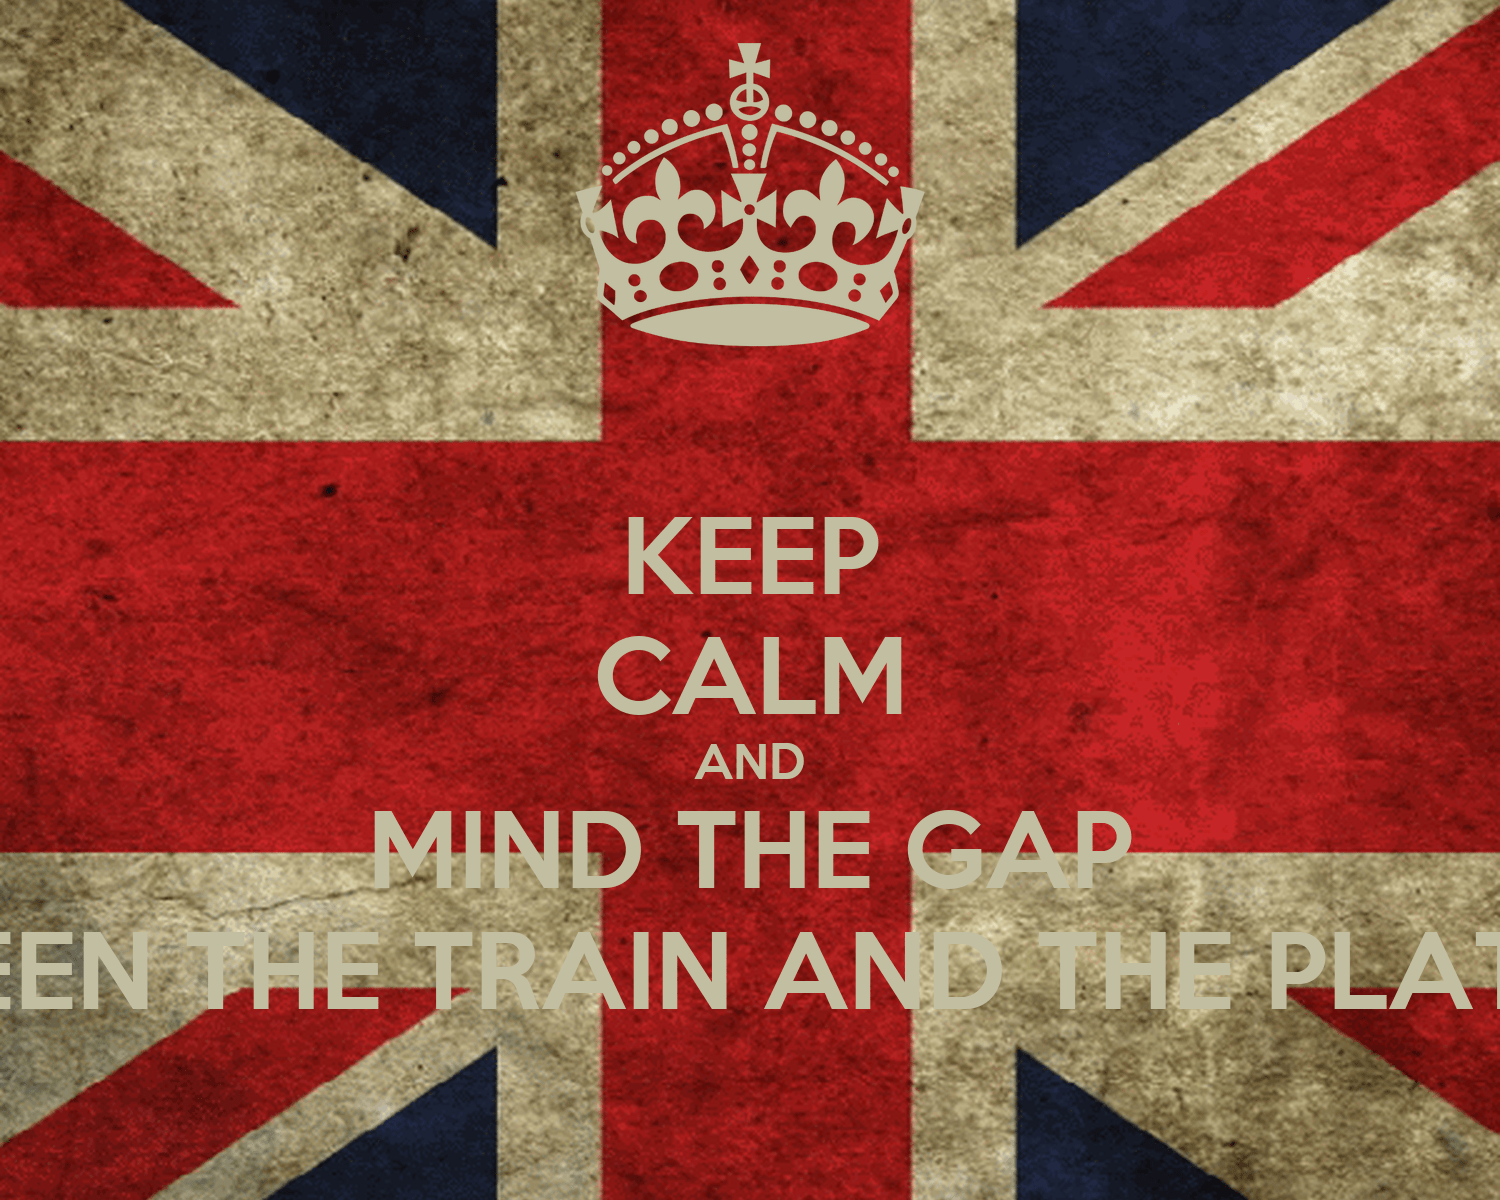 Keep Calm And Carry On Wallpaper Hd Keep Calm And Mind The Gap Between The Train And The